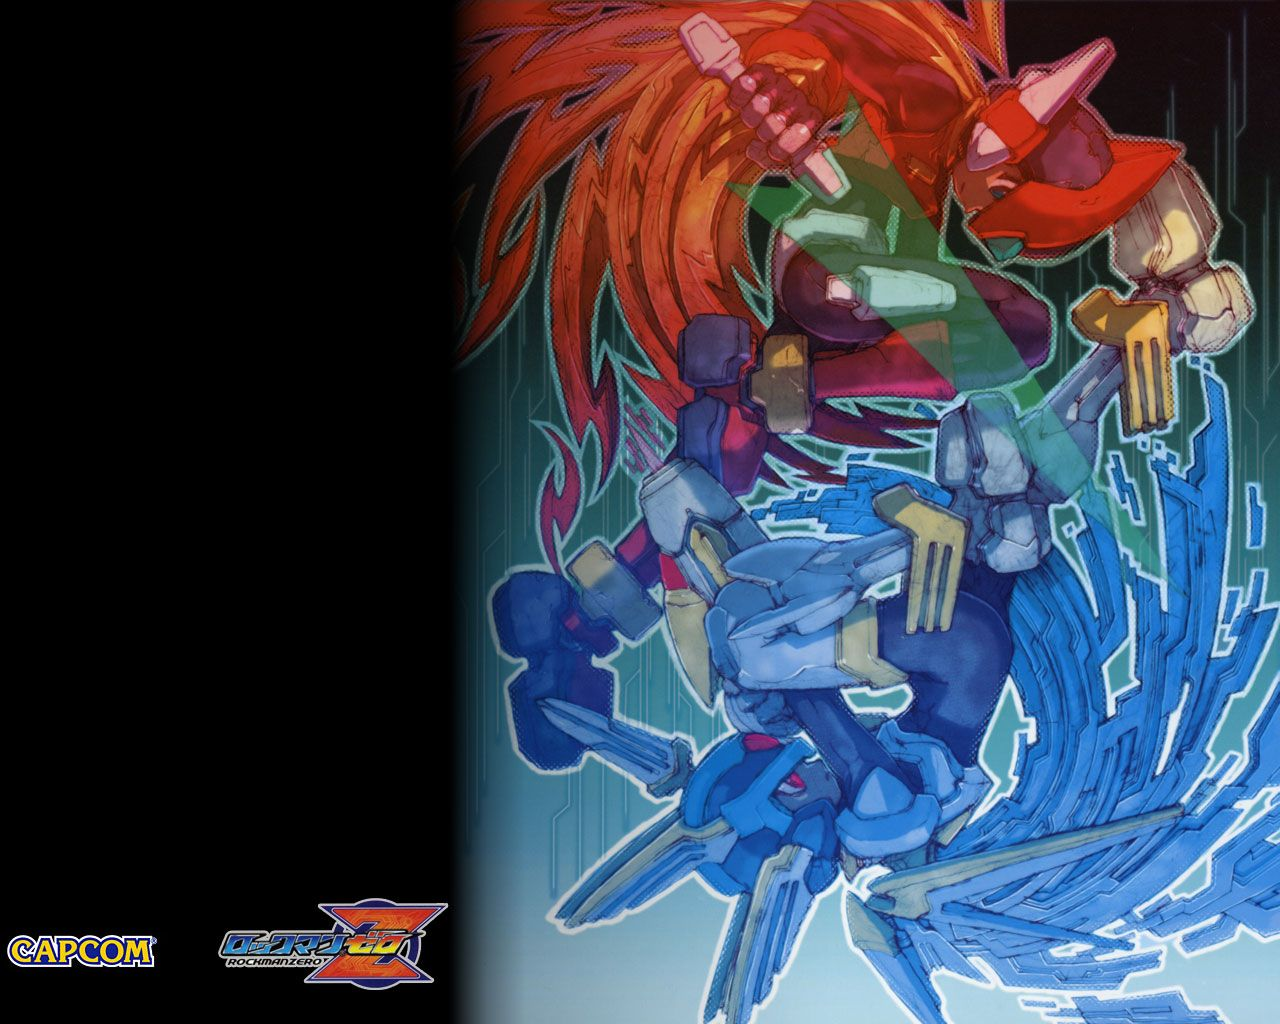 Zero Megaman Zero 198898 Zerochan Wallpaper Backgrounds Mega Man Anime Images